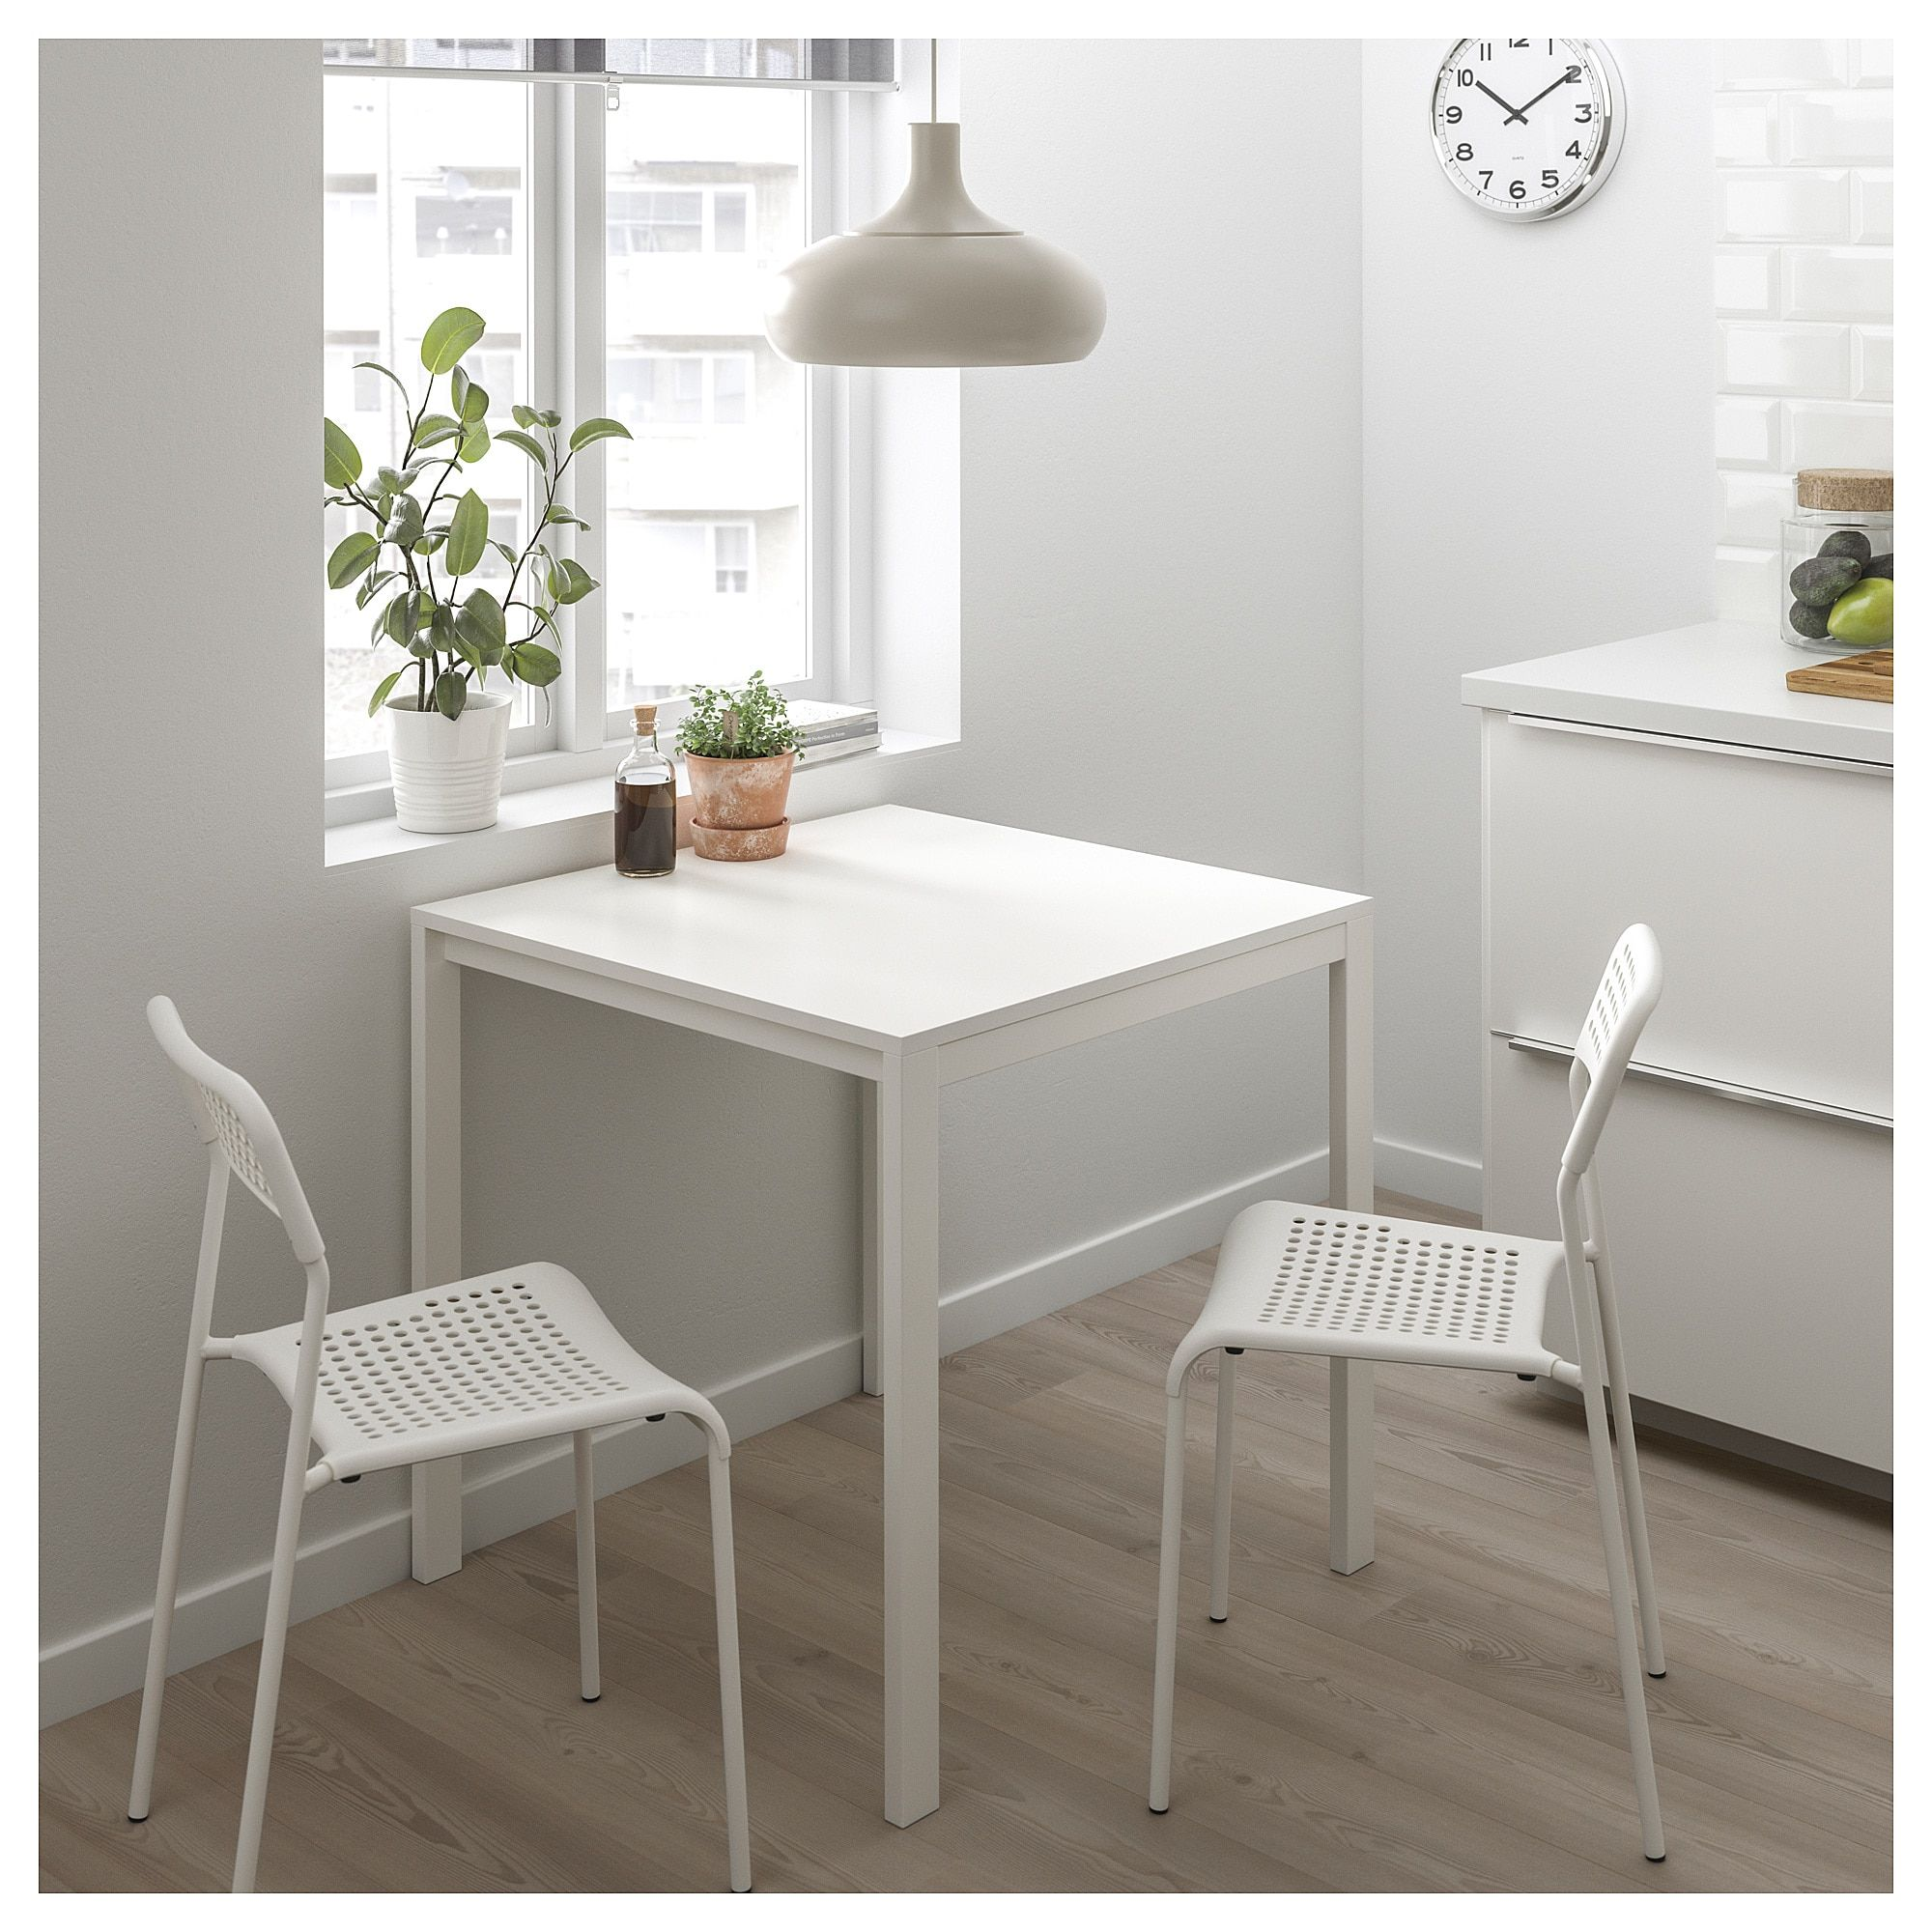 Melltorp Adde Table And 2 Chairs White Ikea Small Kitchen Tables Dining Room Small Ikea